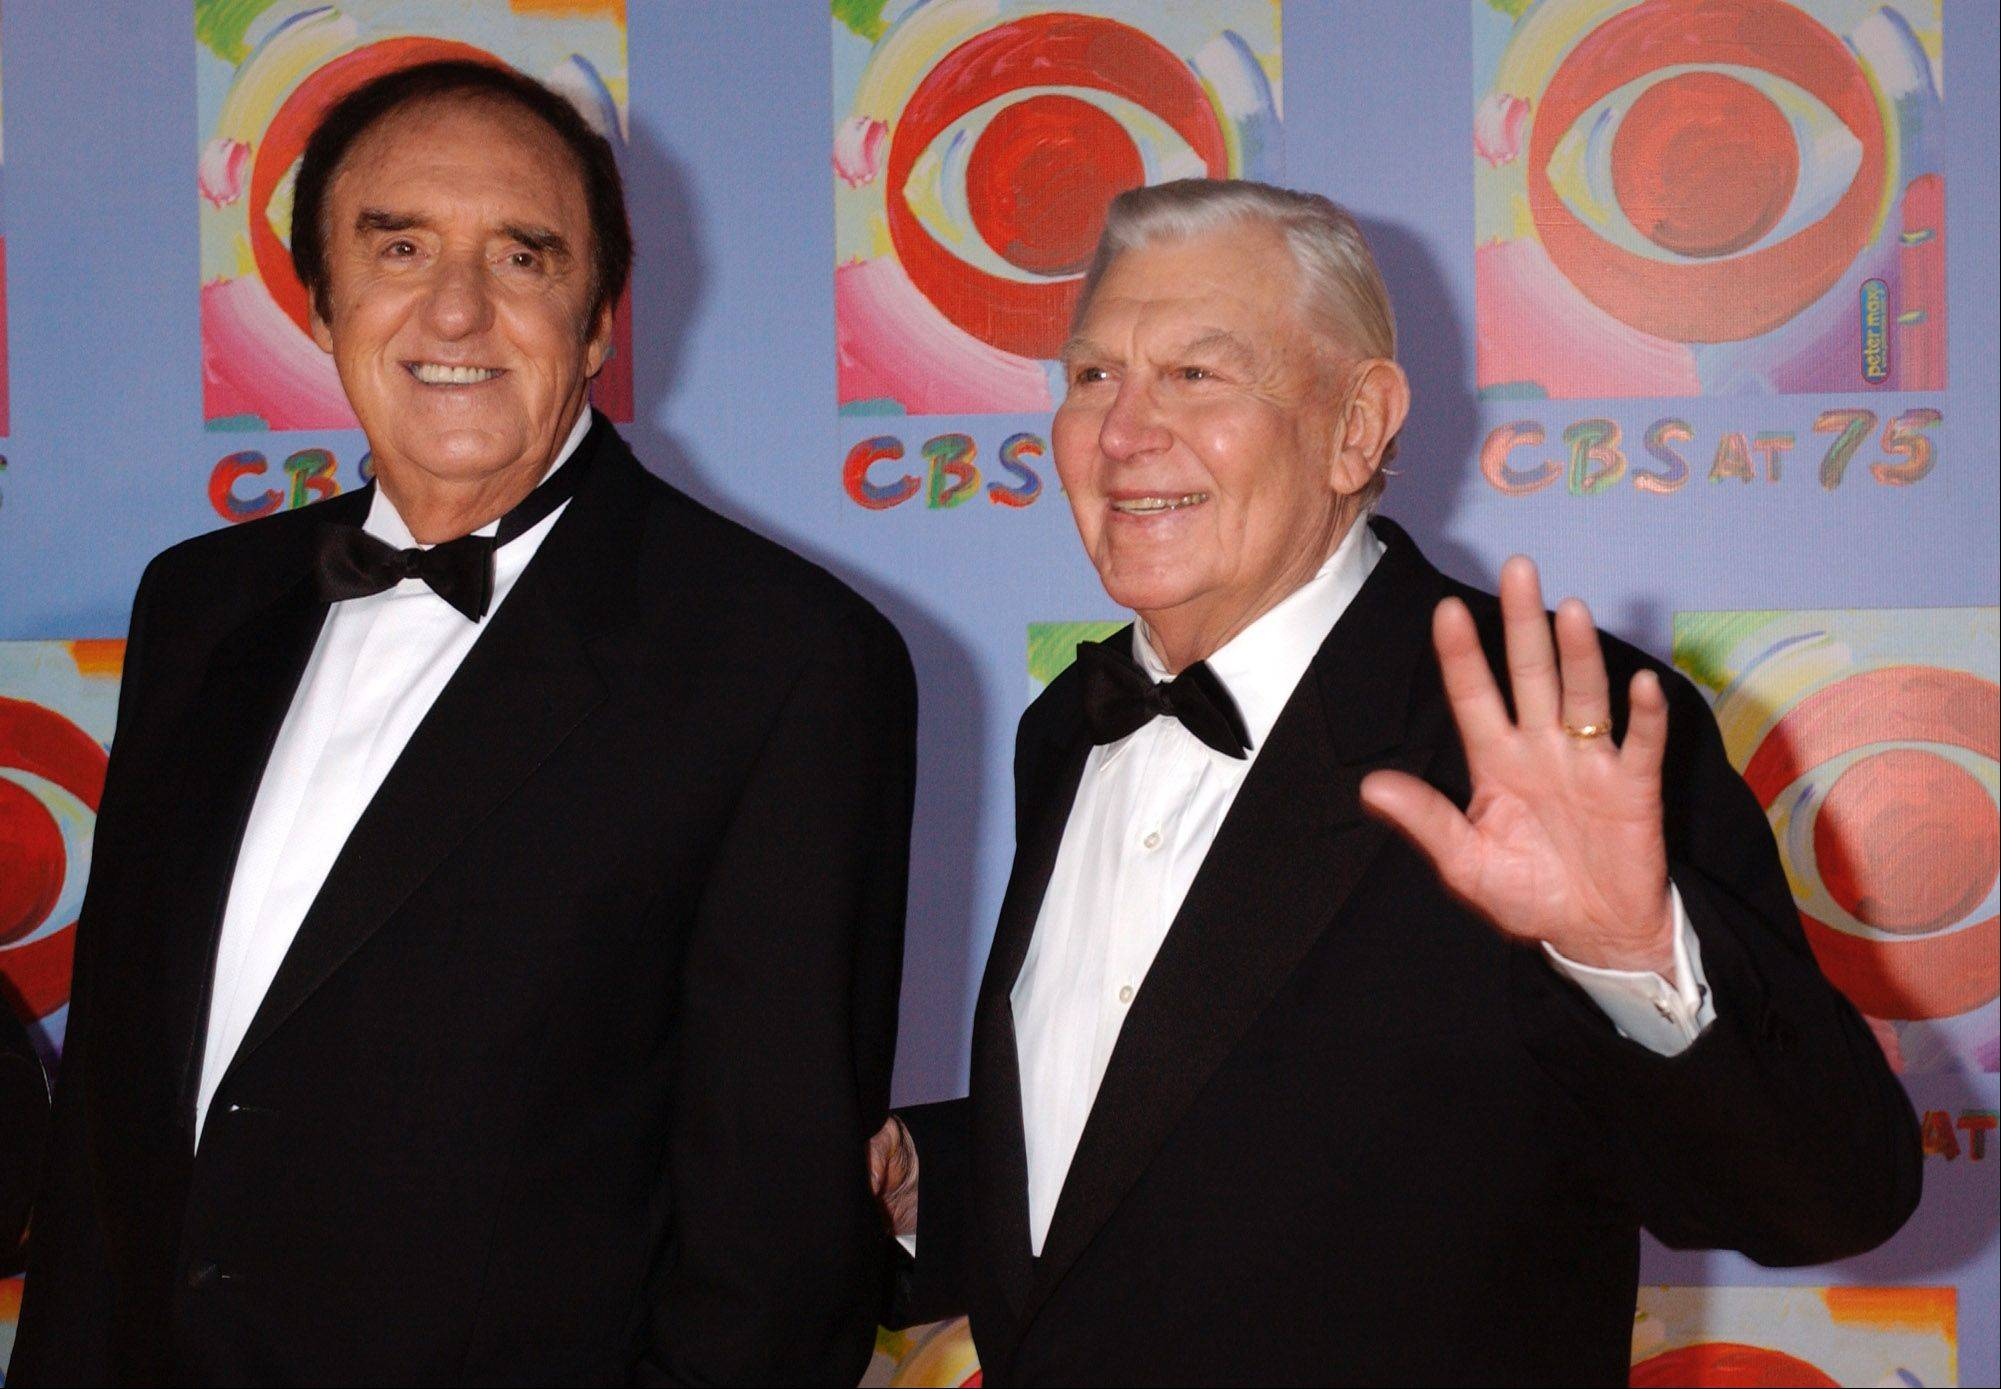 Actors Jim Nabors, left, and Andy Griffith arrive to CBS's 75th anniversary celebration Sunday, Nov. 2, 2003, in New York.